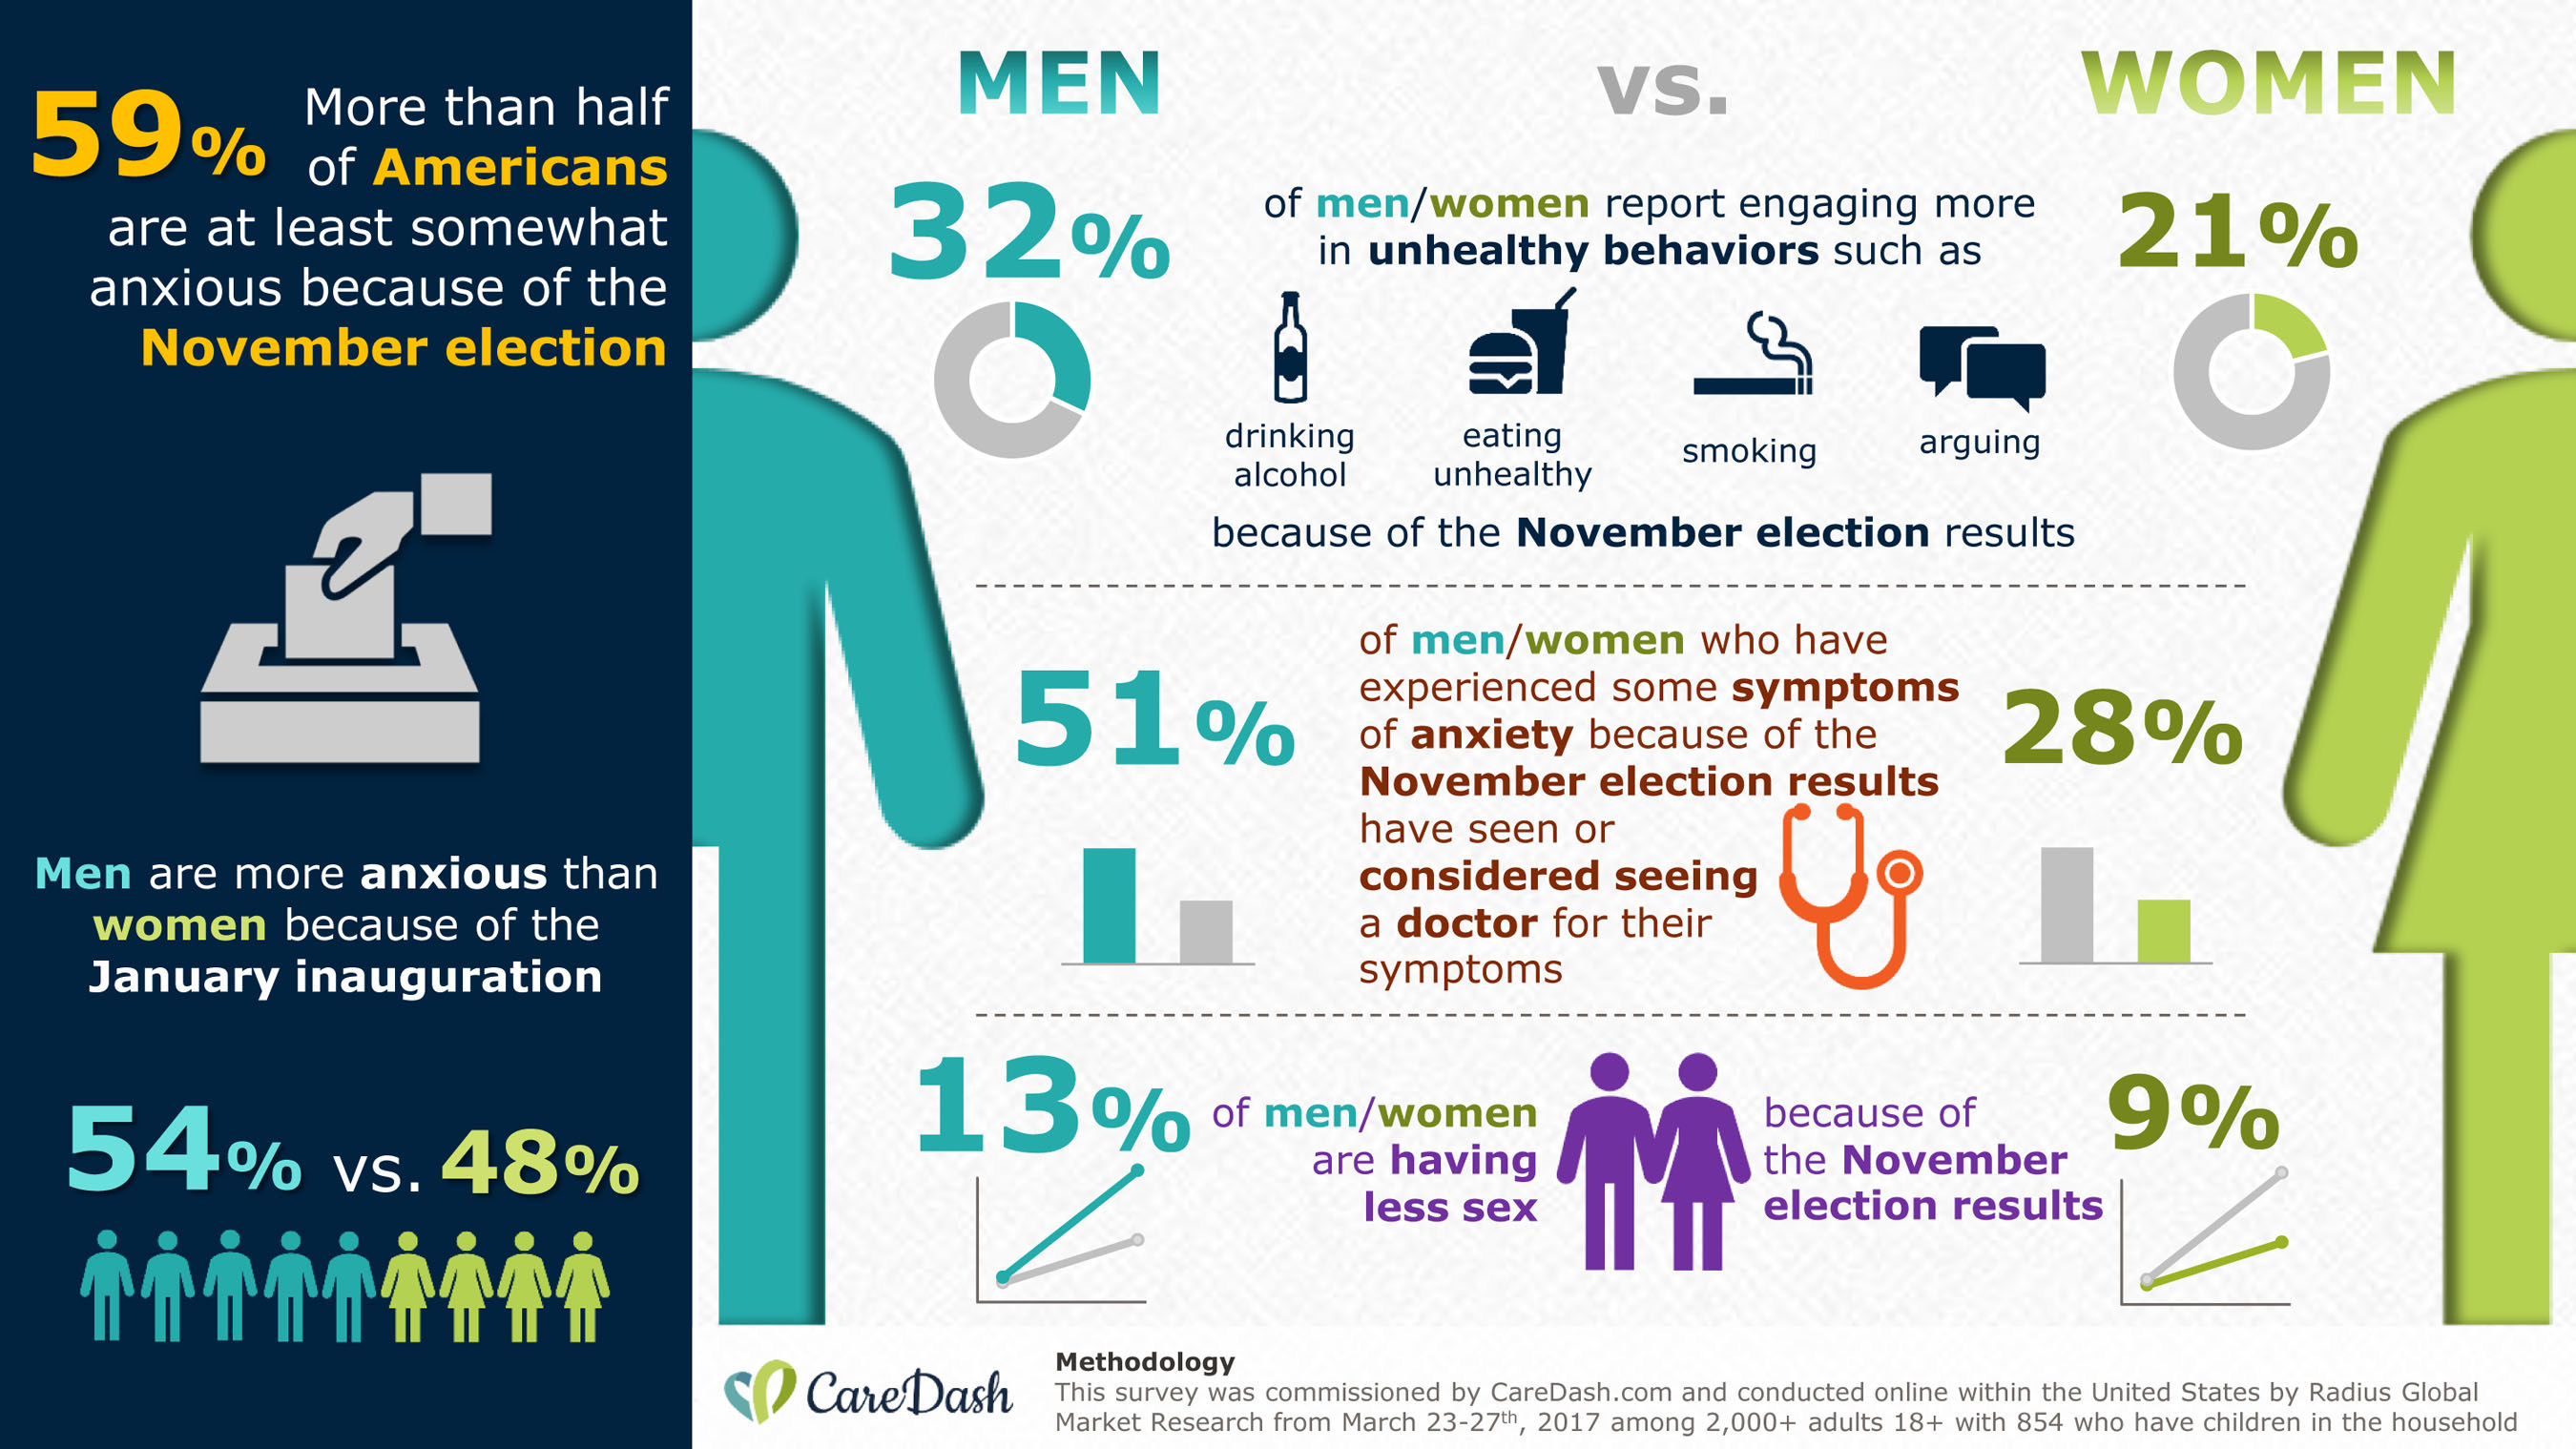 """According to a recent survey commissioned by CareDash.com and conducted by Radius Global Market Research, men are more anxious than women because of the current political environment as President Trump's """"First 100 Days"""" draws near."""